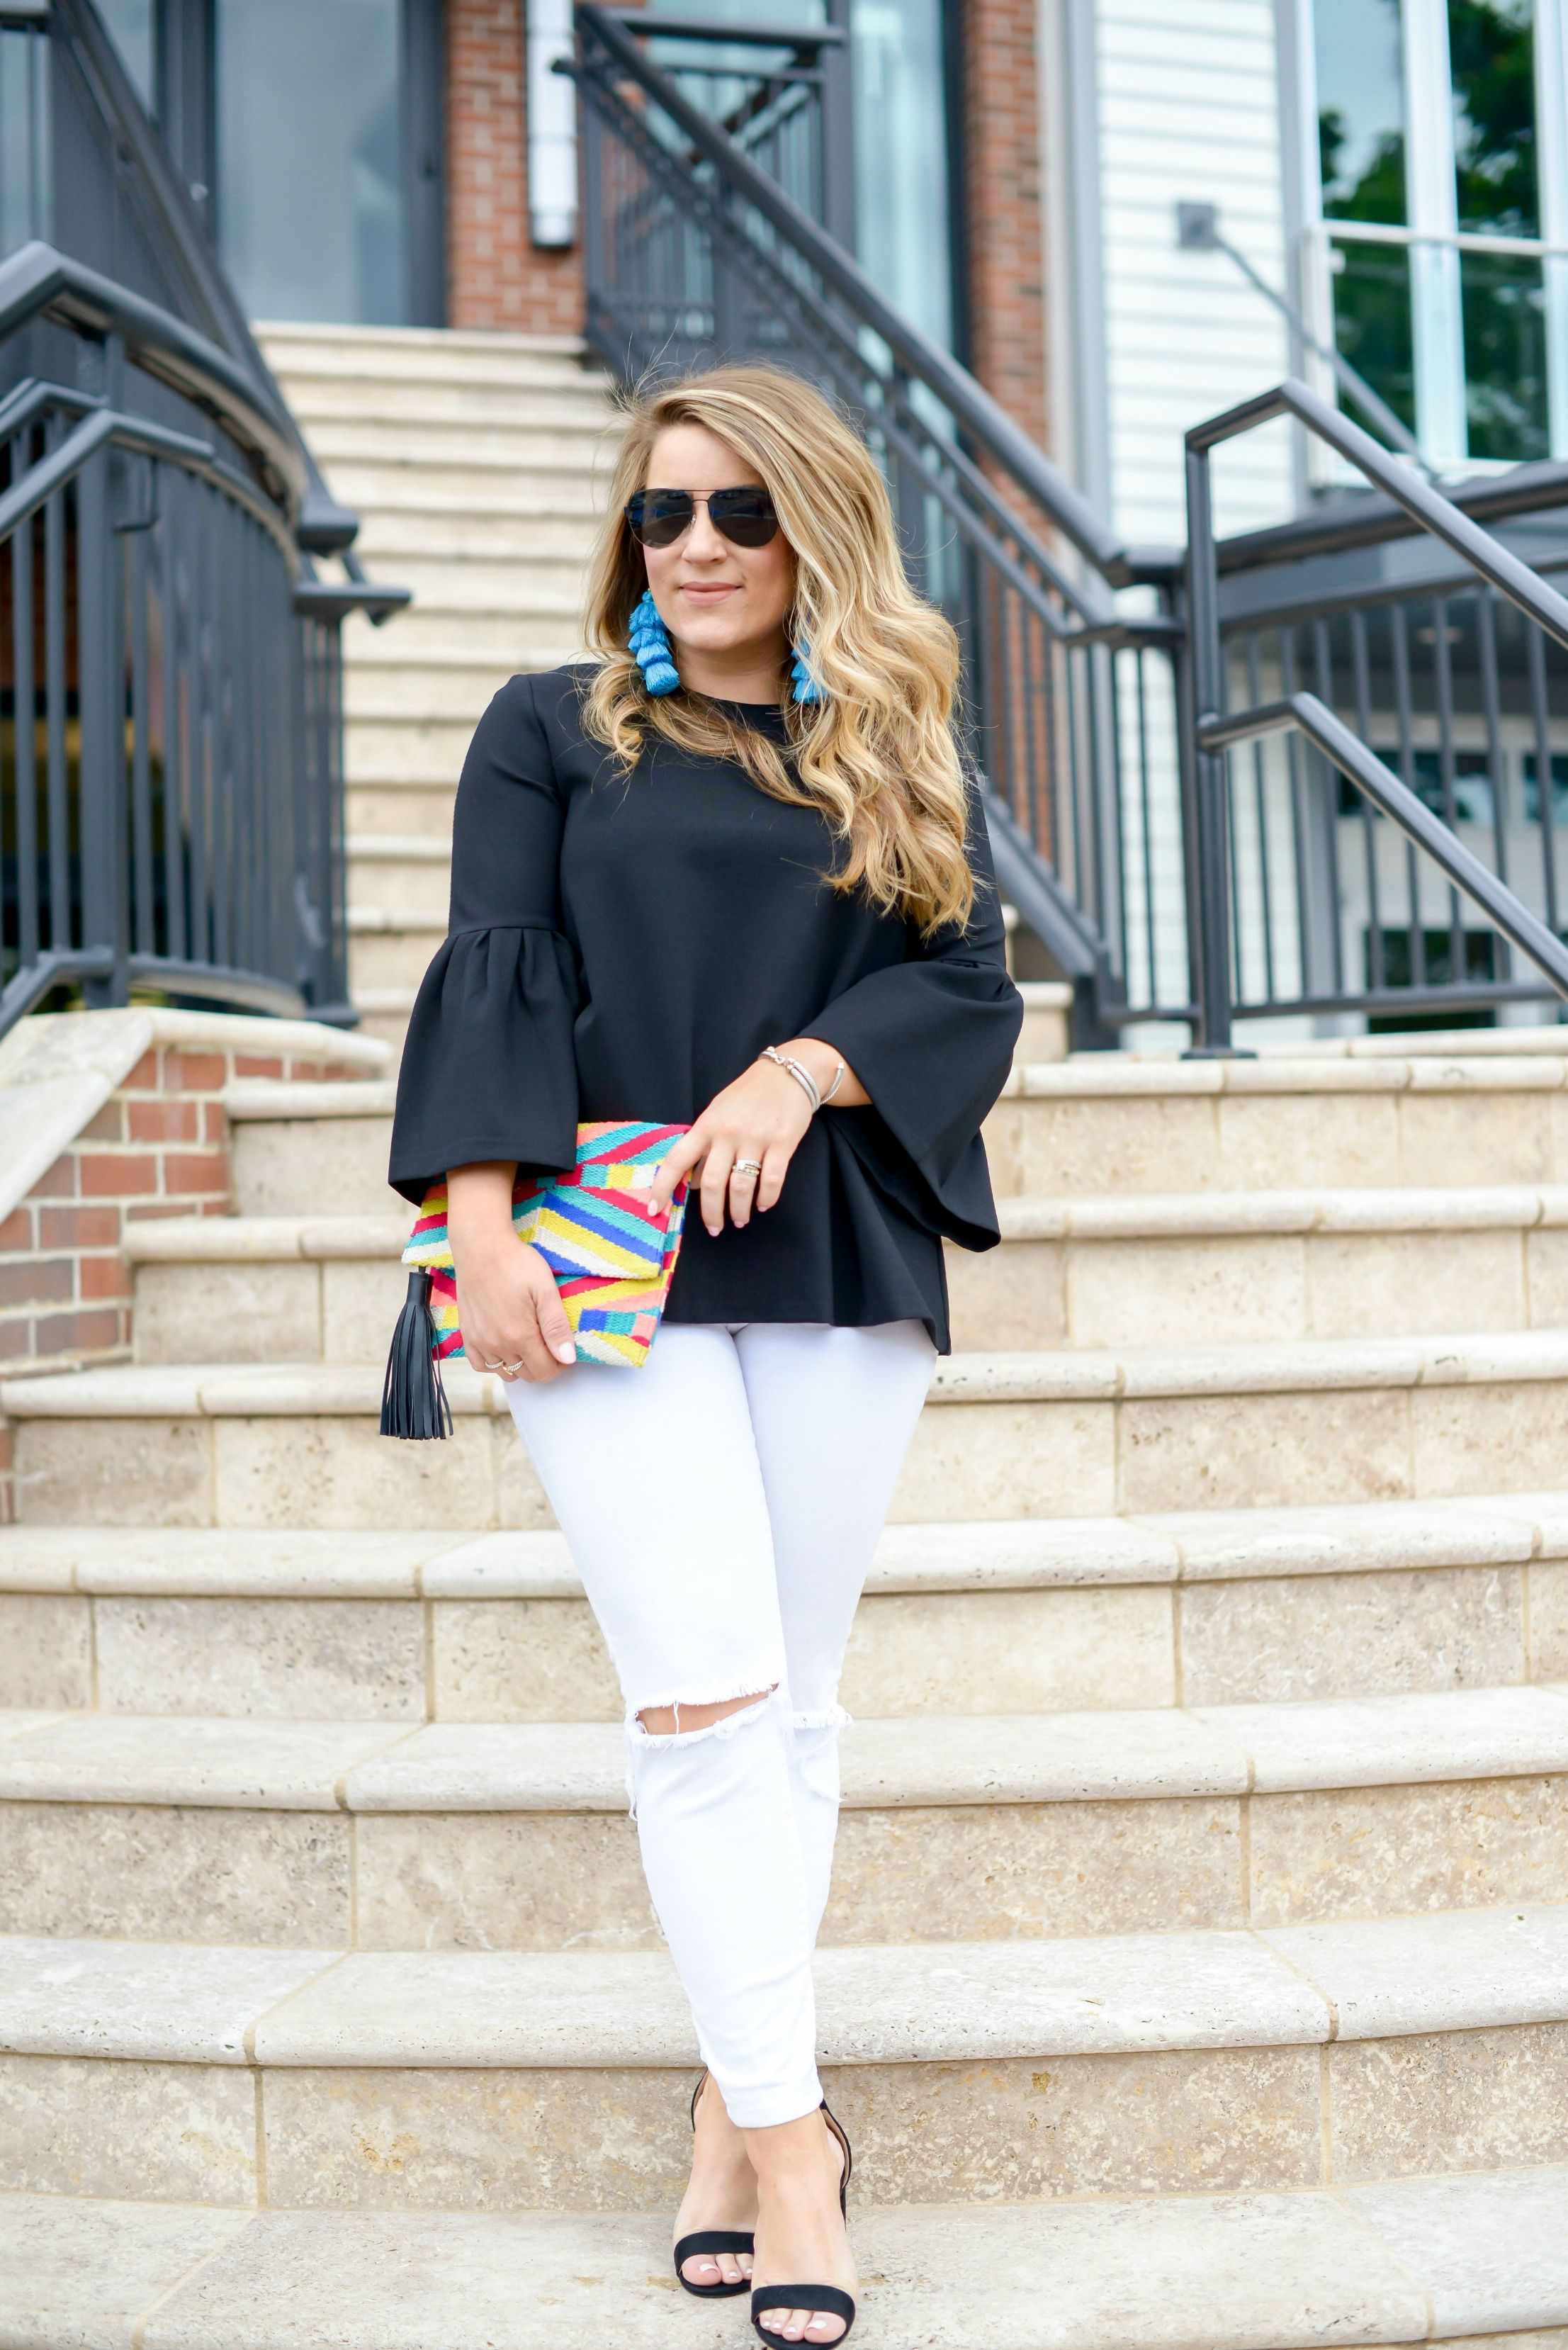 6eb0dfb3e18a Summer date night outfit - click through for more of this simple black and white  outfit featuring colorful accessories!